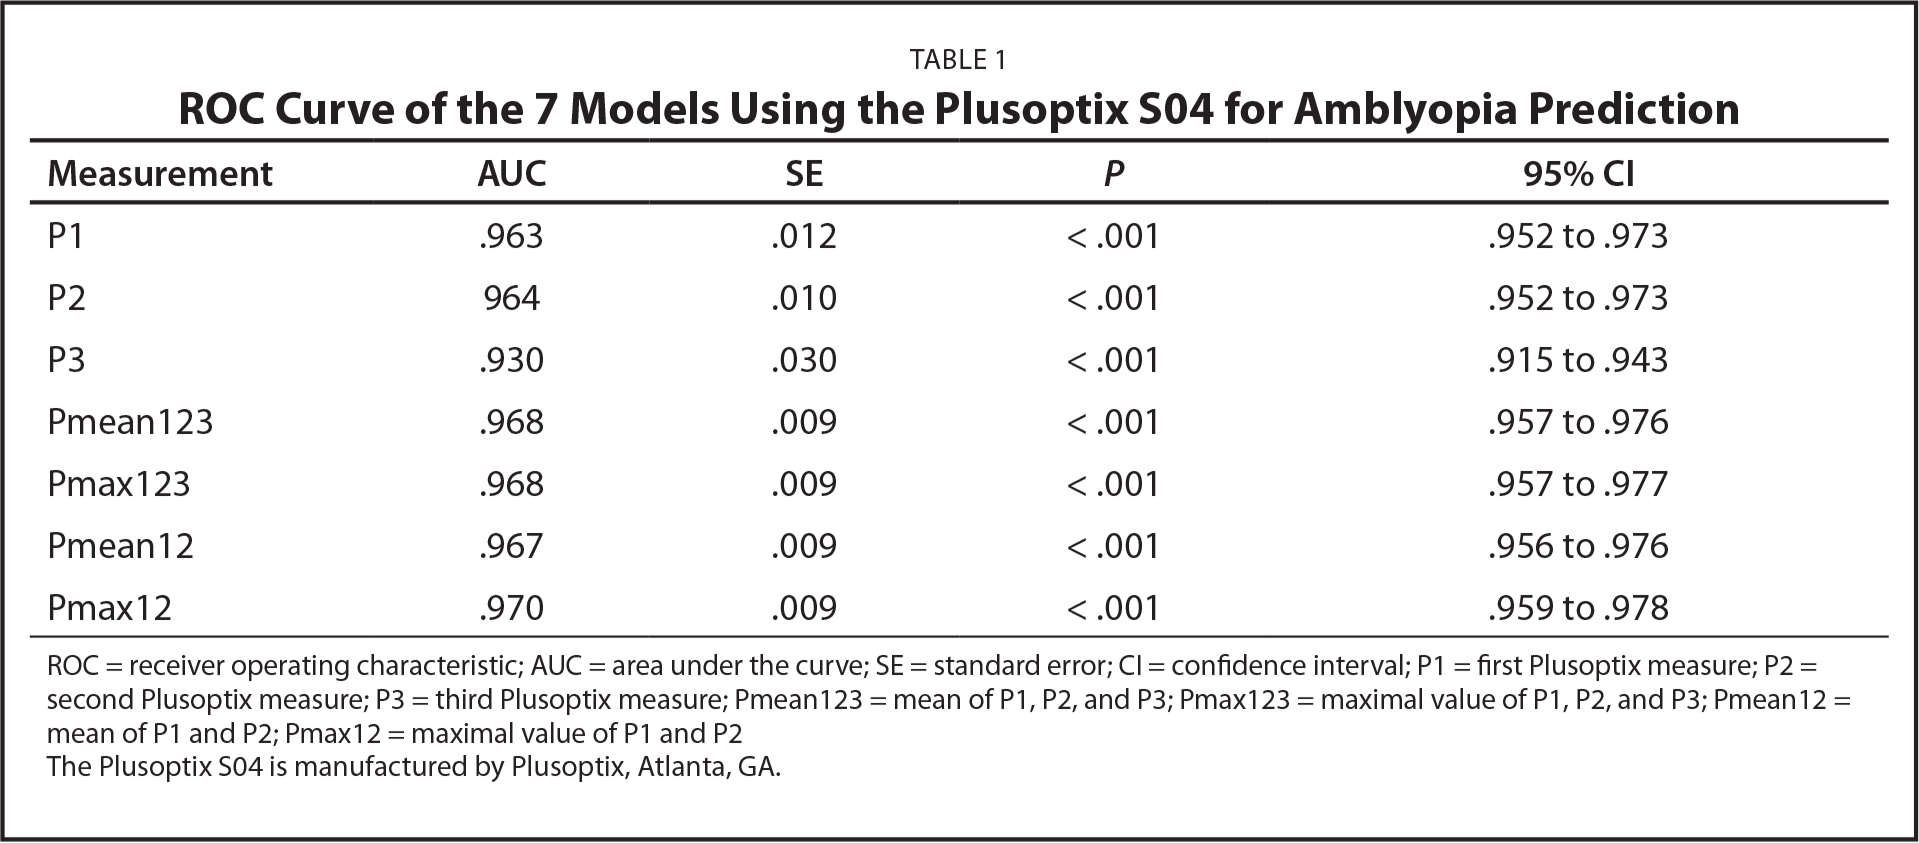 ROC Curve of the 7 Models Using the Plusoptix S04 for Amblyopia Prediction